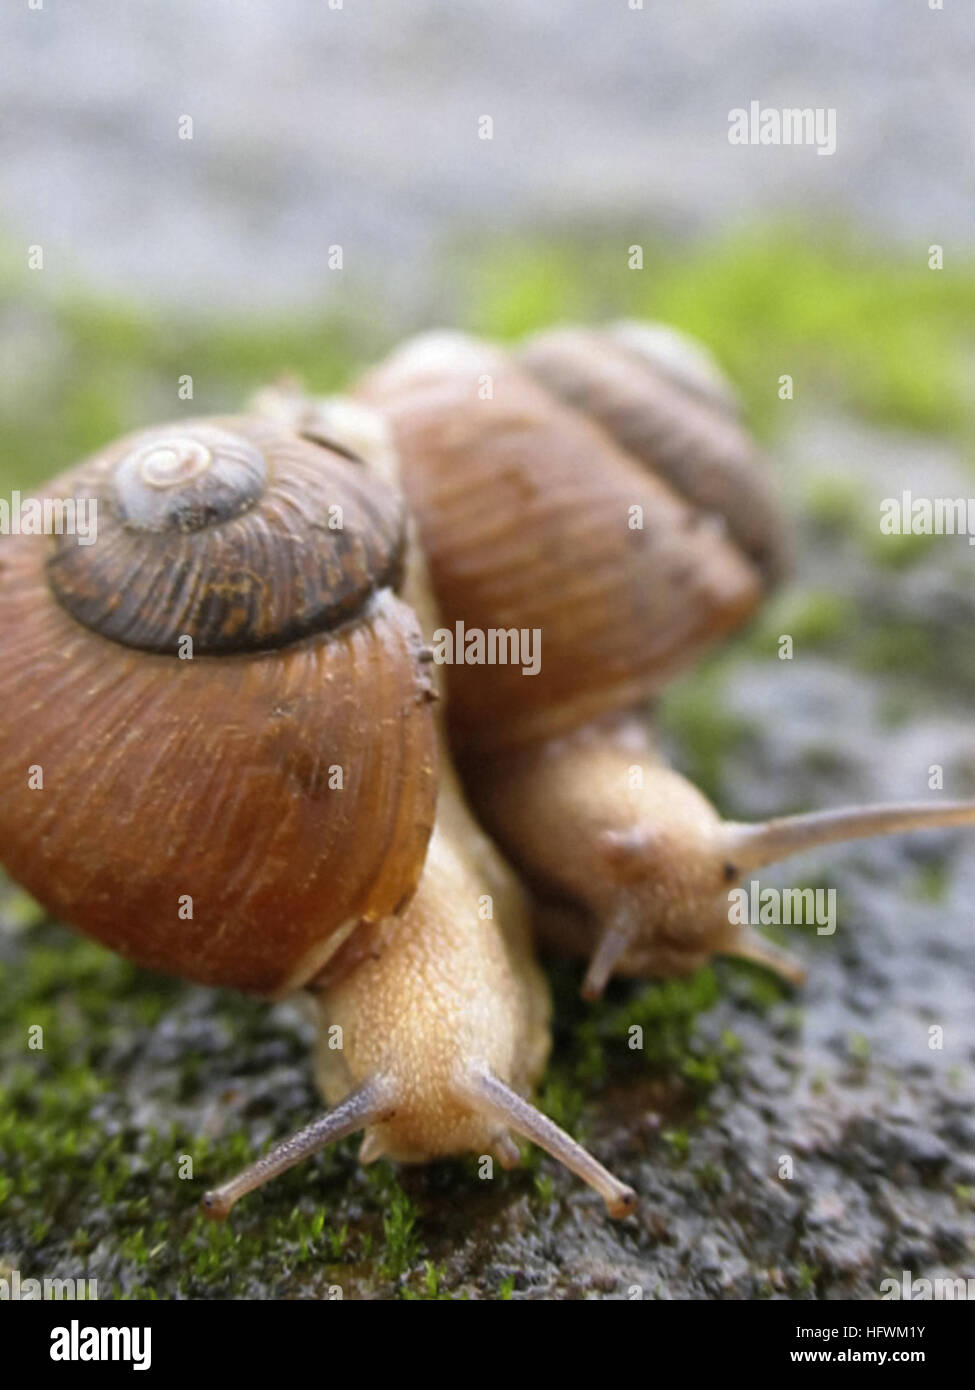 Two Garden Snails Stock Photos & Two Garden Snails Stock Images - Alamy